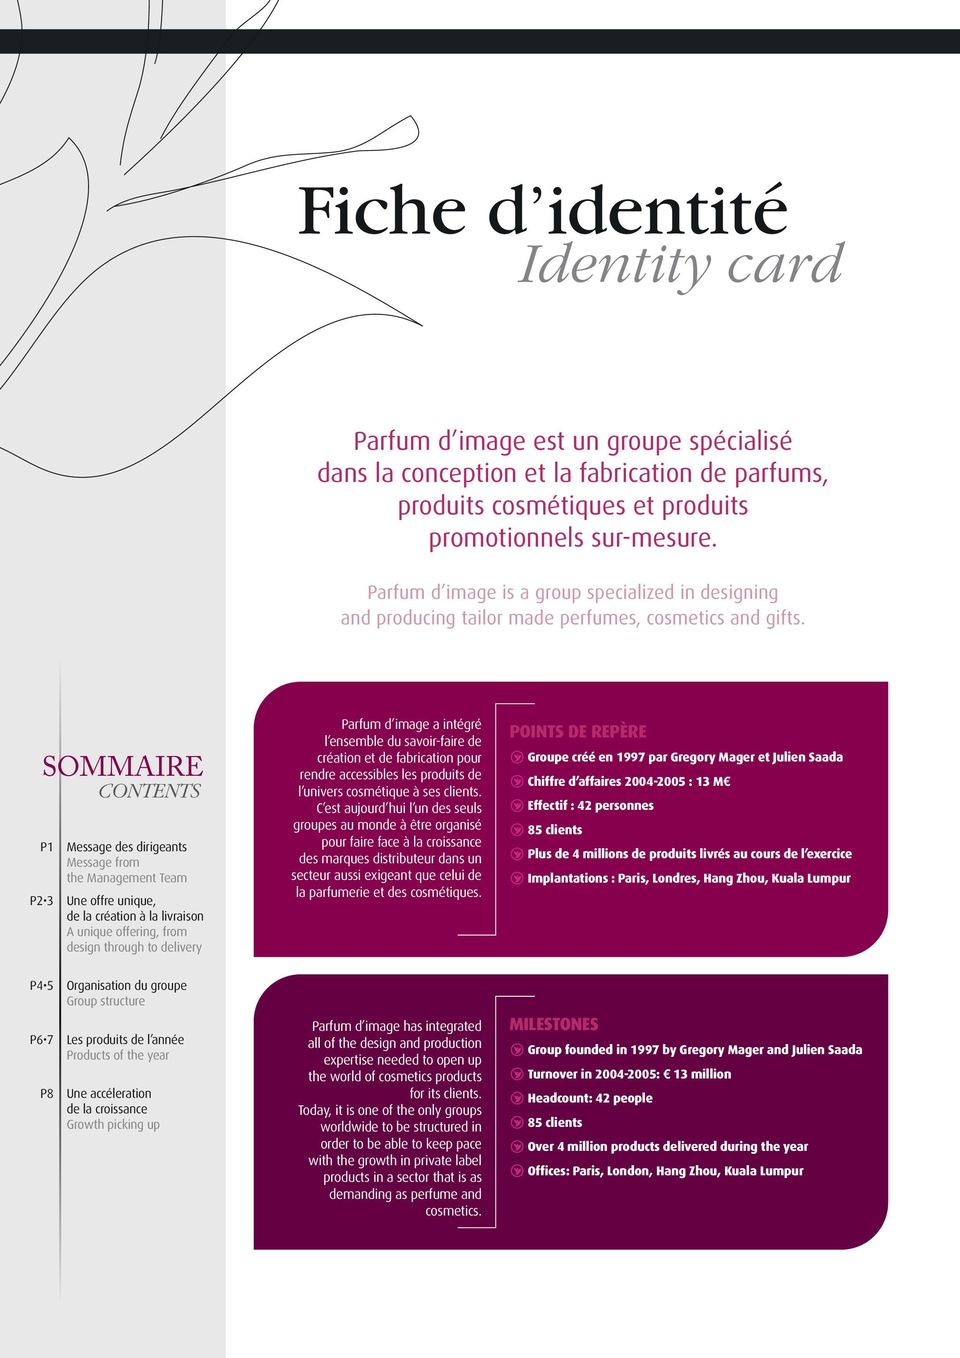 SOMMAIRE CONTENTS P1 P2 3 Message des dirigeants Message from the Management Team Une offre unique, de la création à la livraison A unique offering, from design through to delivery Parfum d image a